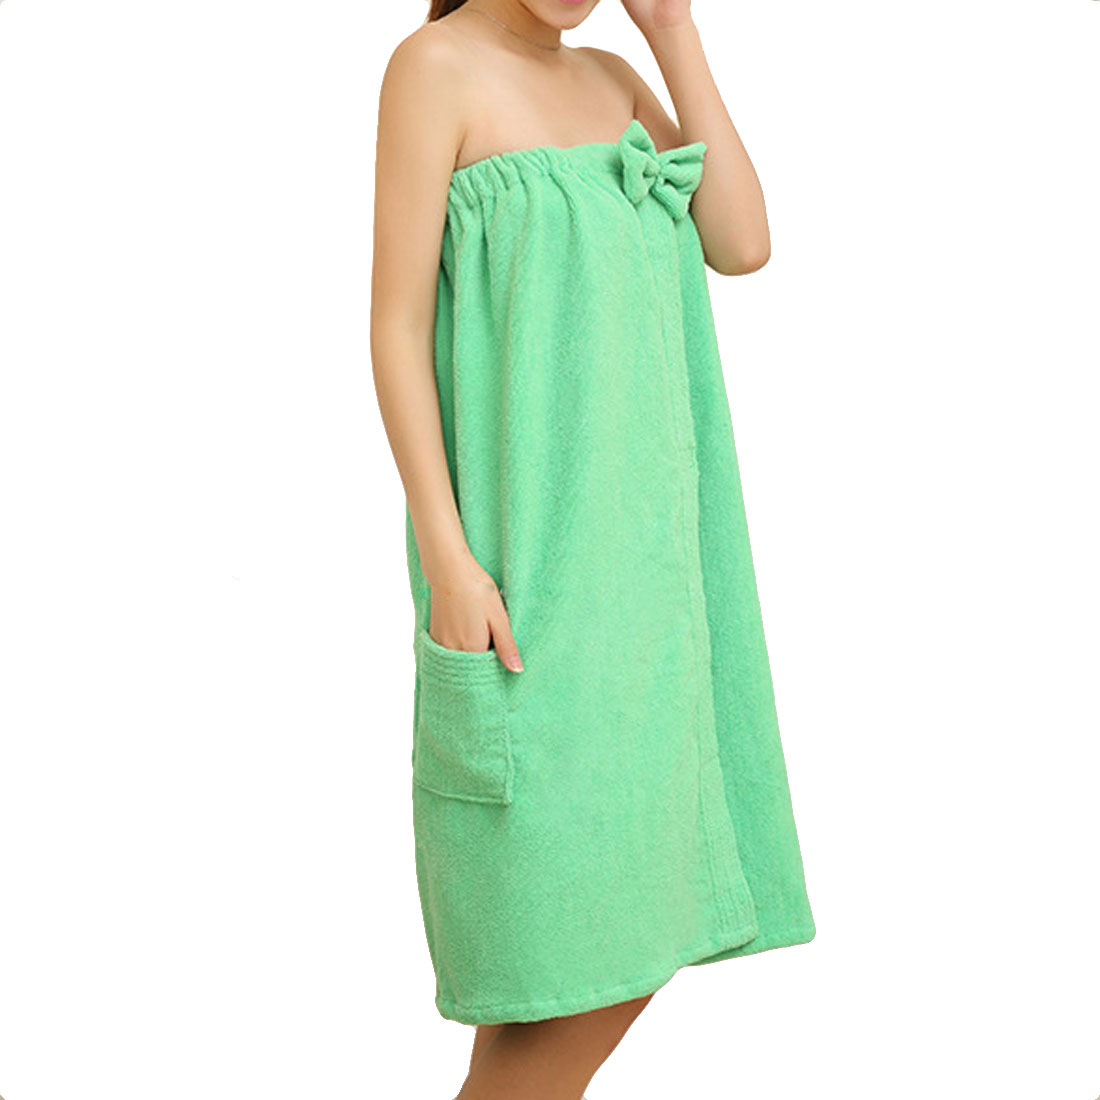 Lady Microfiber Elastic Bowknot Beach Swimming Shower Bath Towel Wrap Skirt Washcloth Green